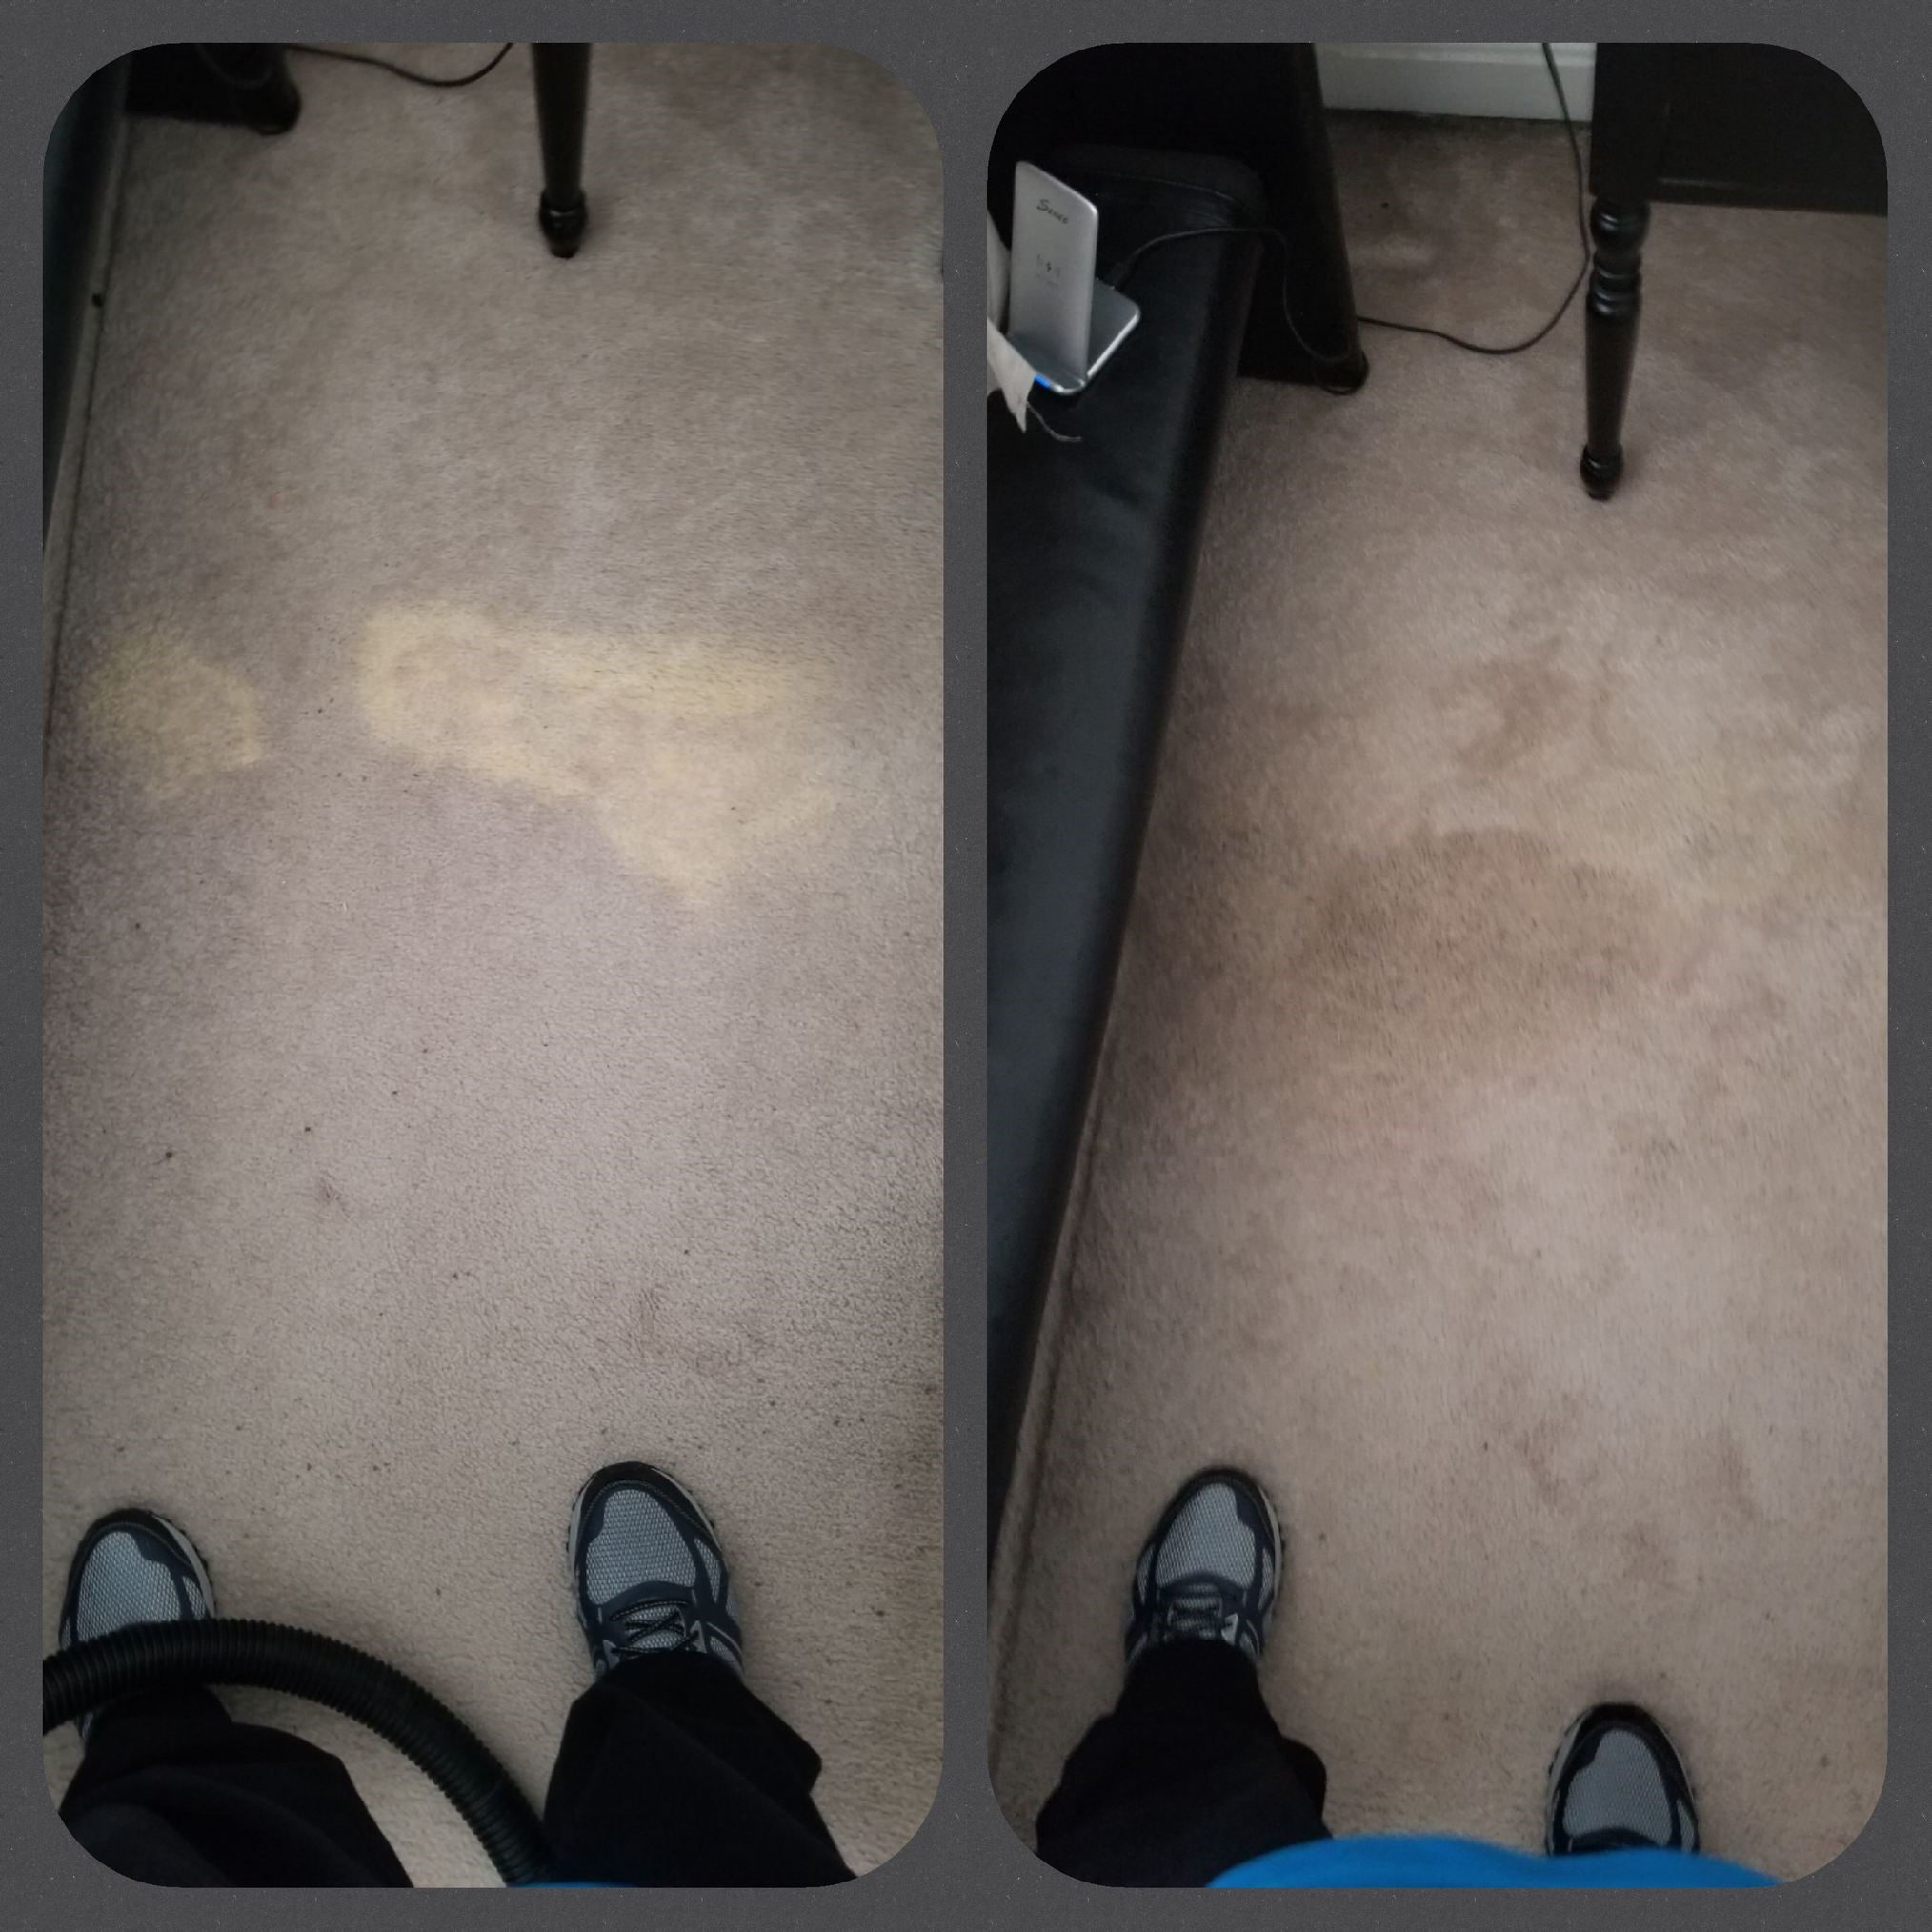 Bleach Spot Removal in Odenton, MD